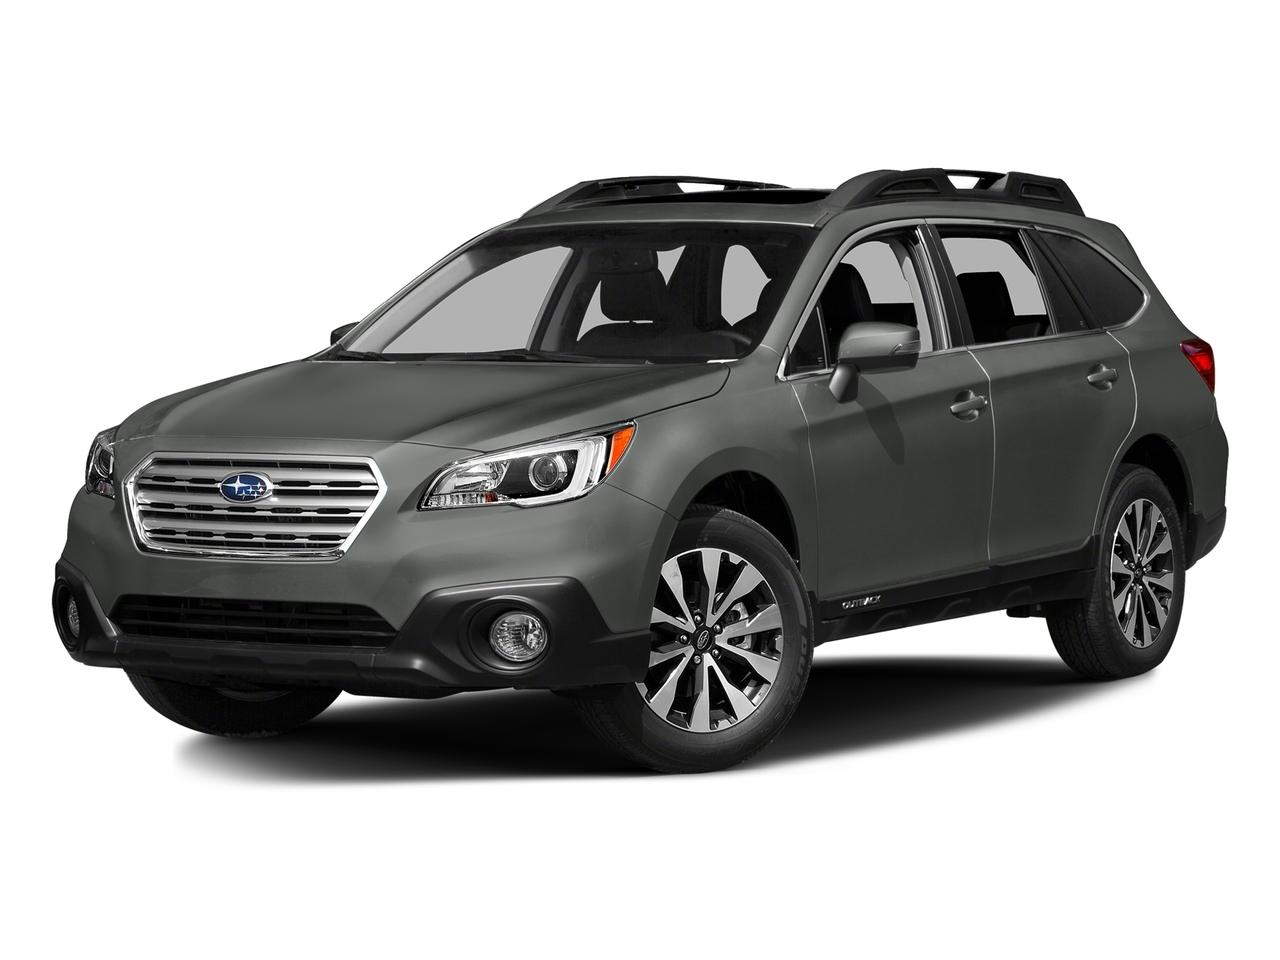 2016 Subaru Outback Vehicle Photo in Akron, OH 44312